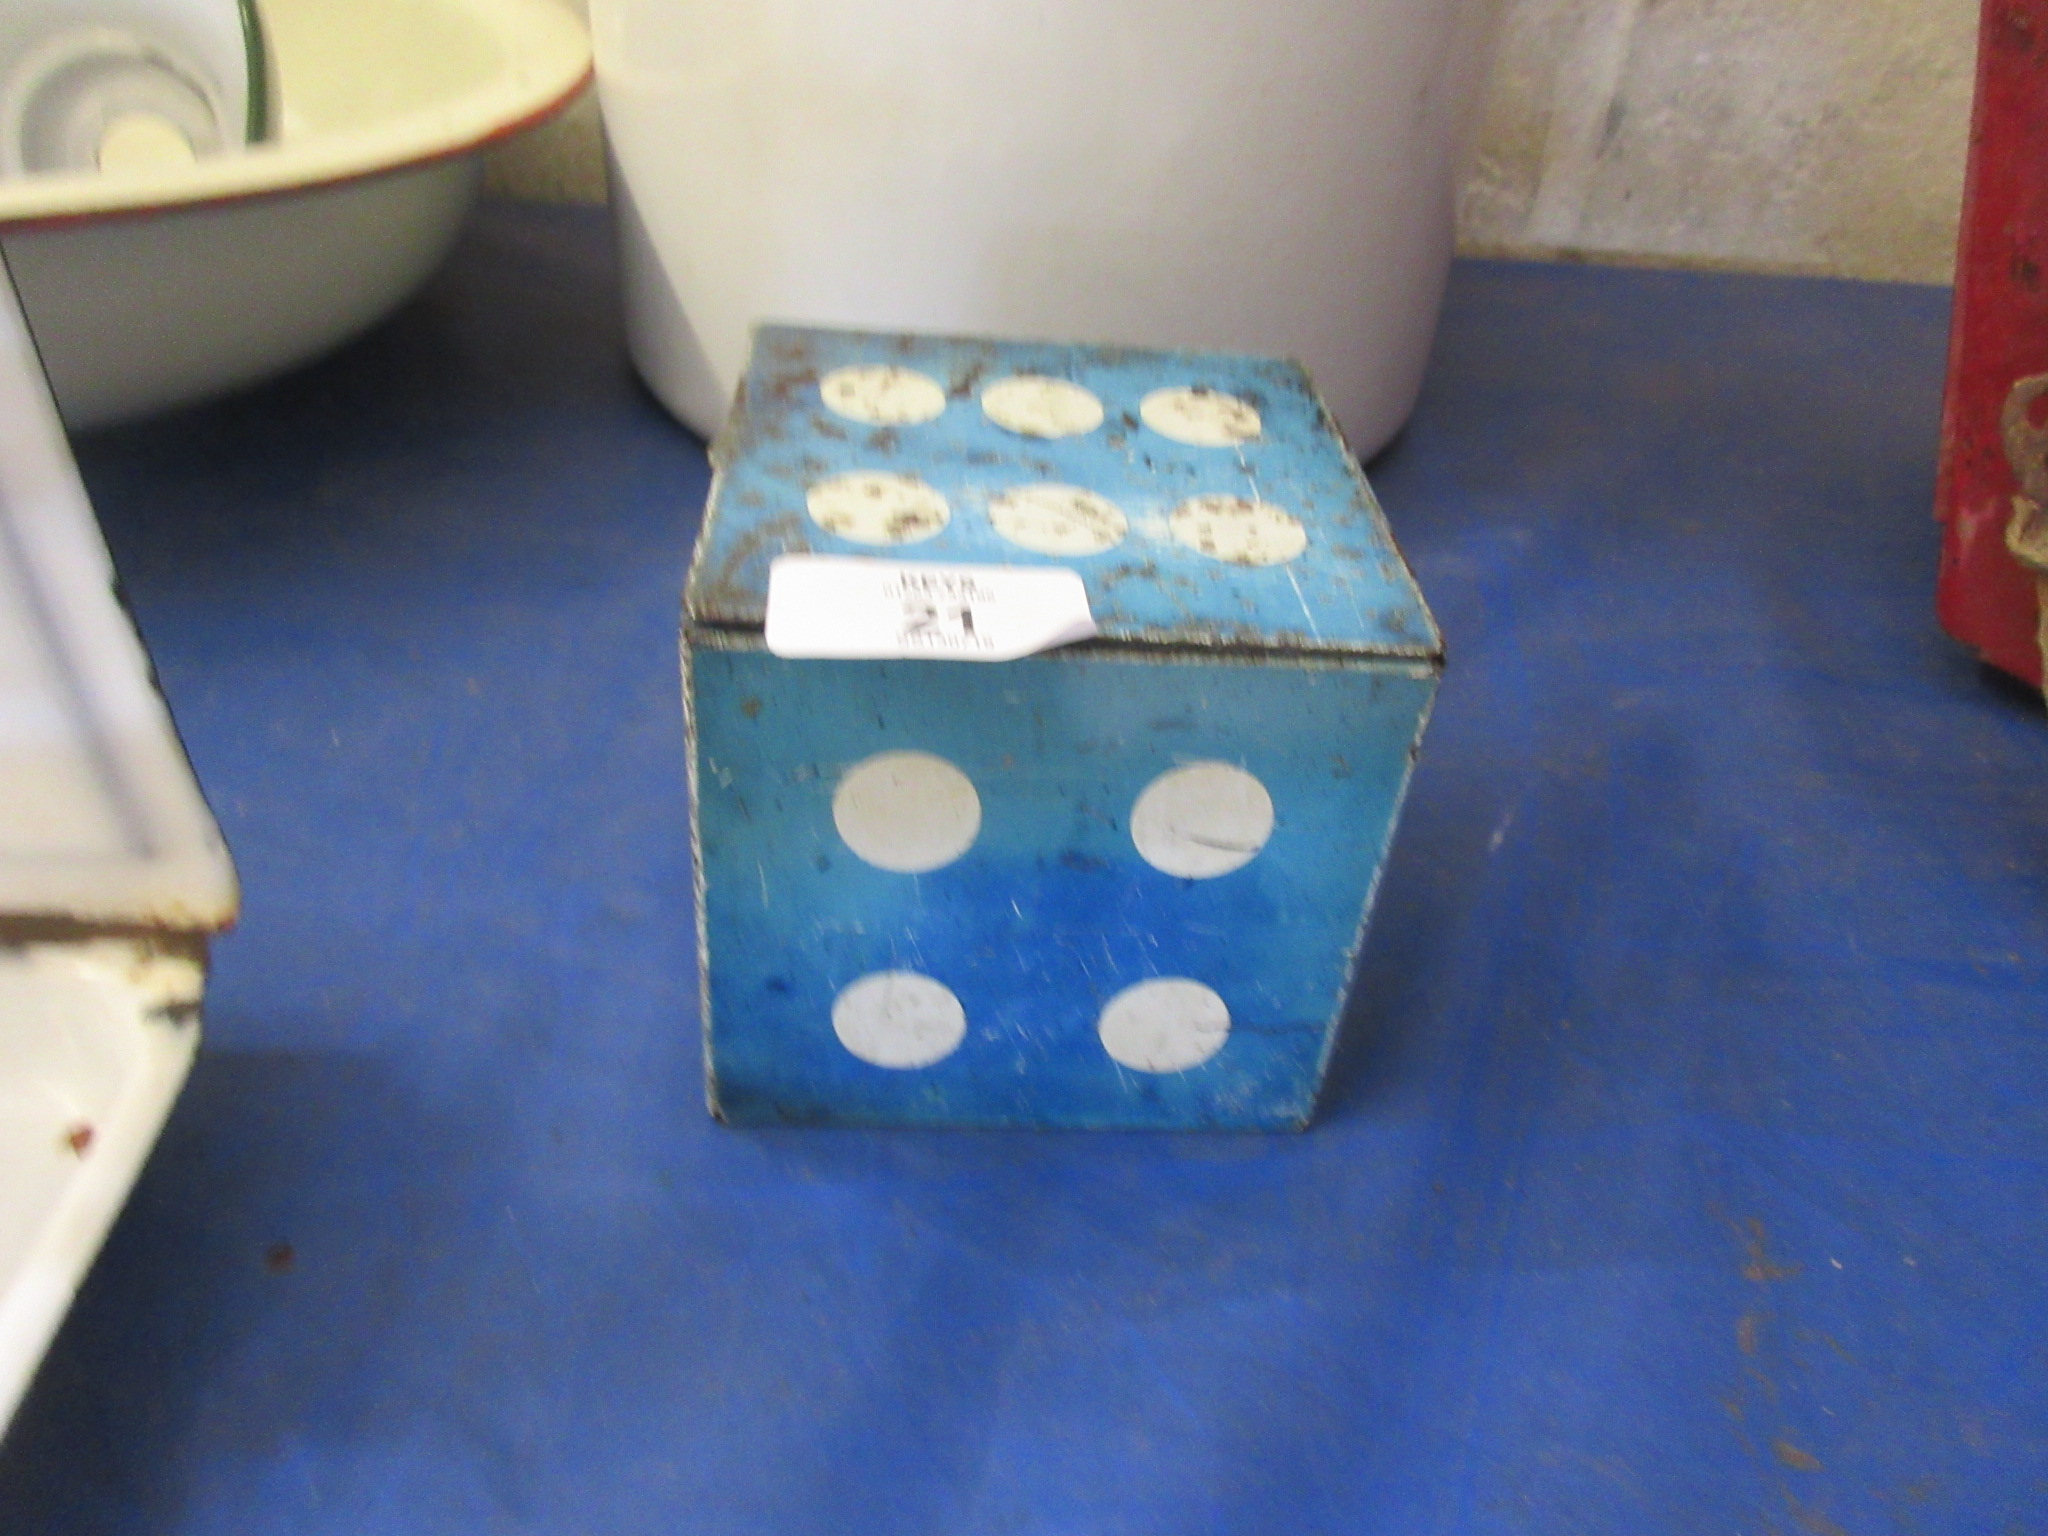 An unusual Hollands toffee tin shapes as a die